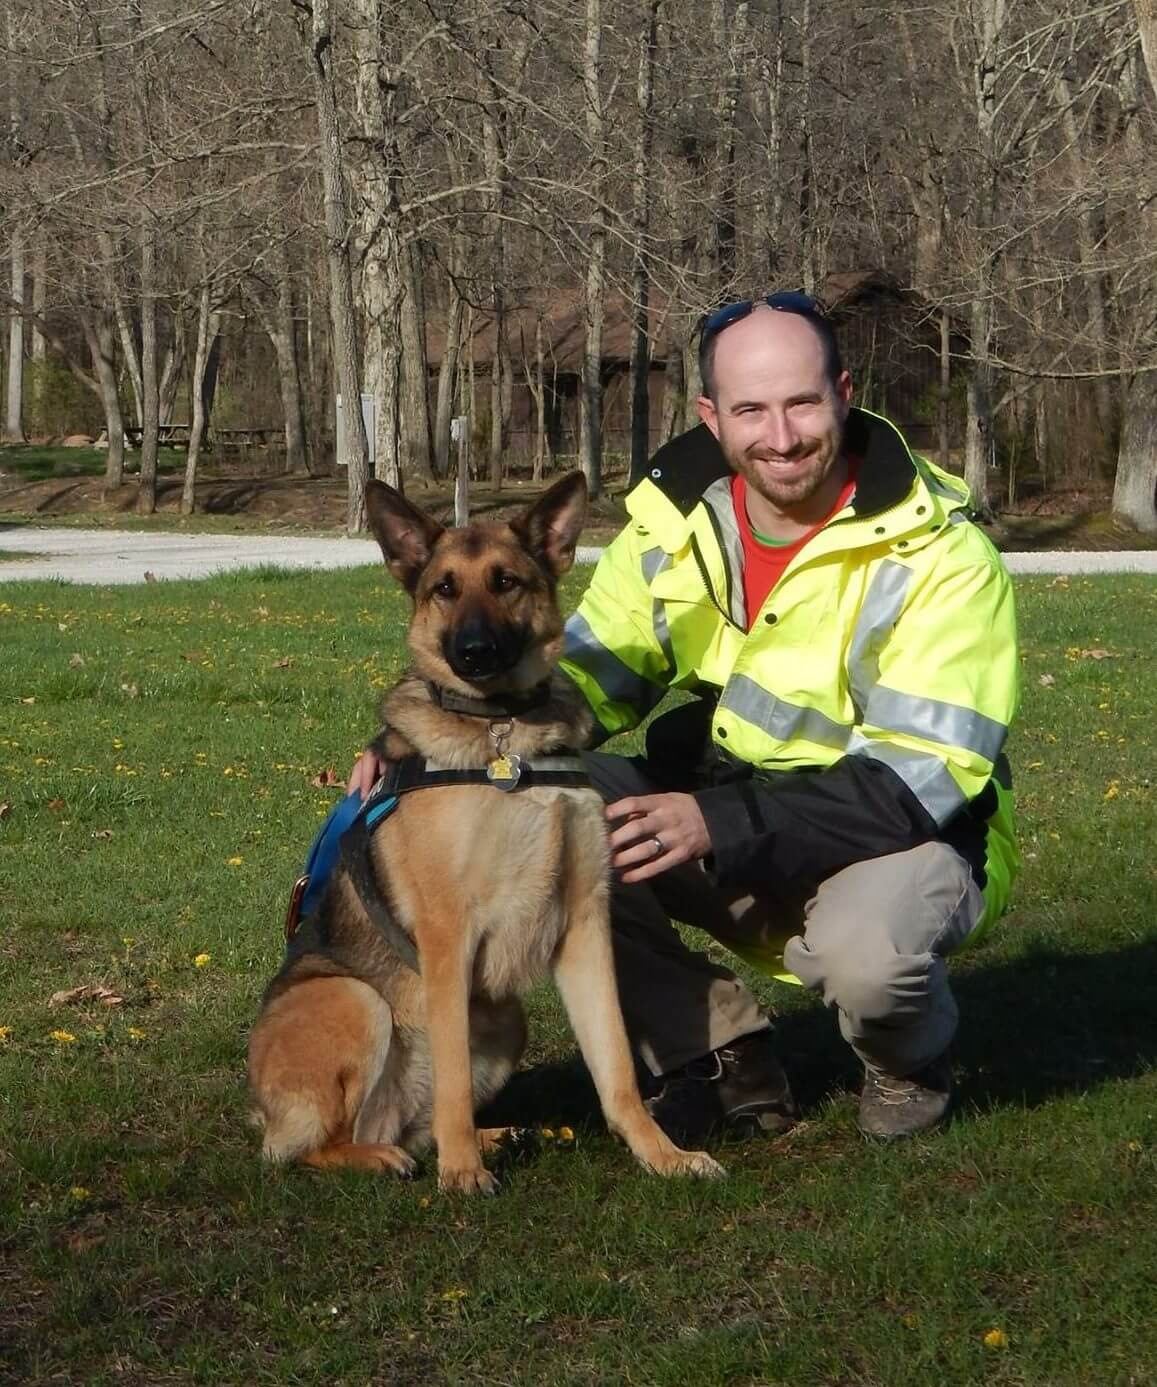 K9 Luna and Nick